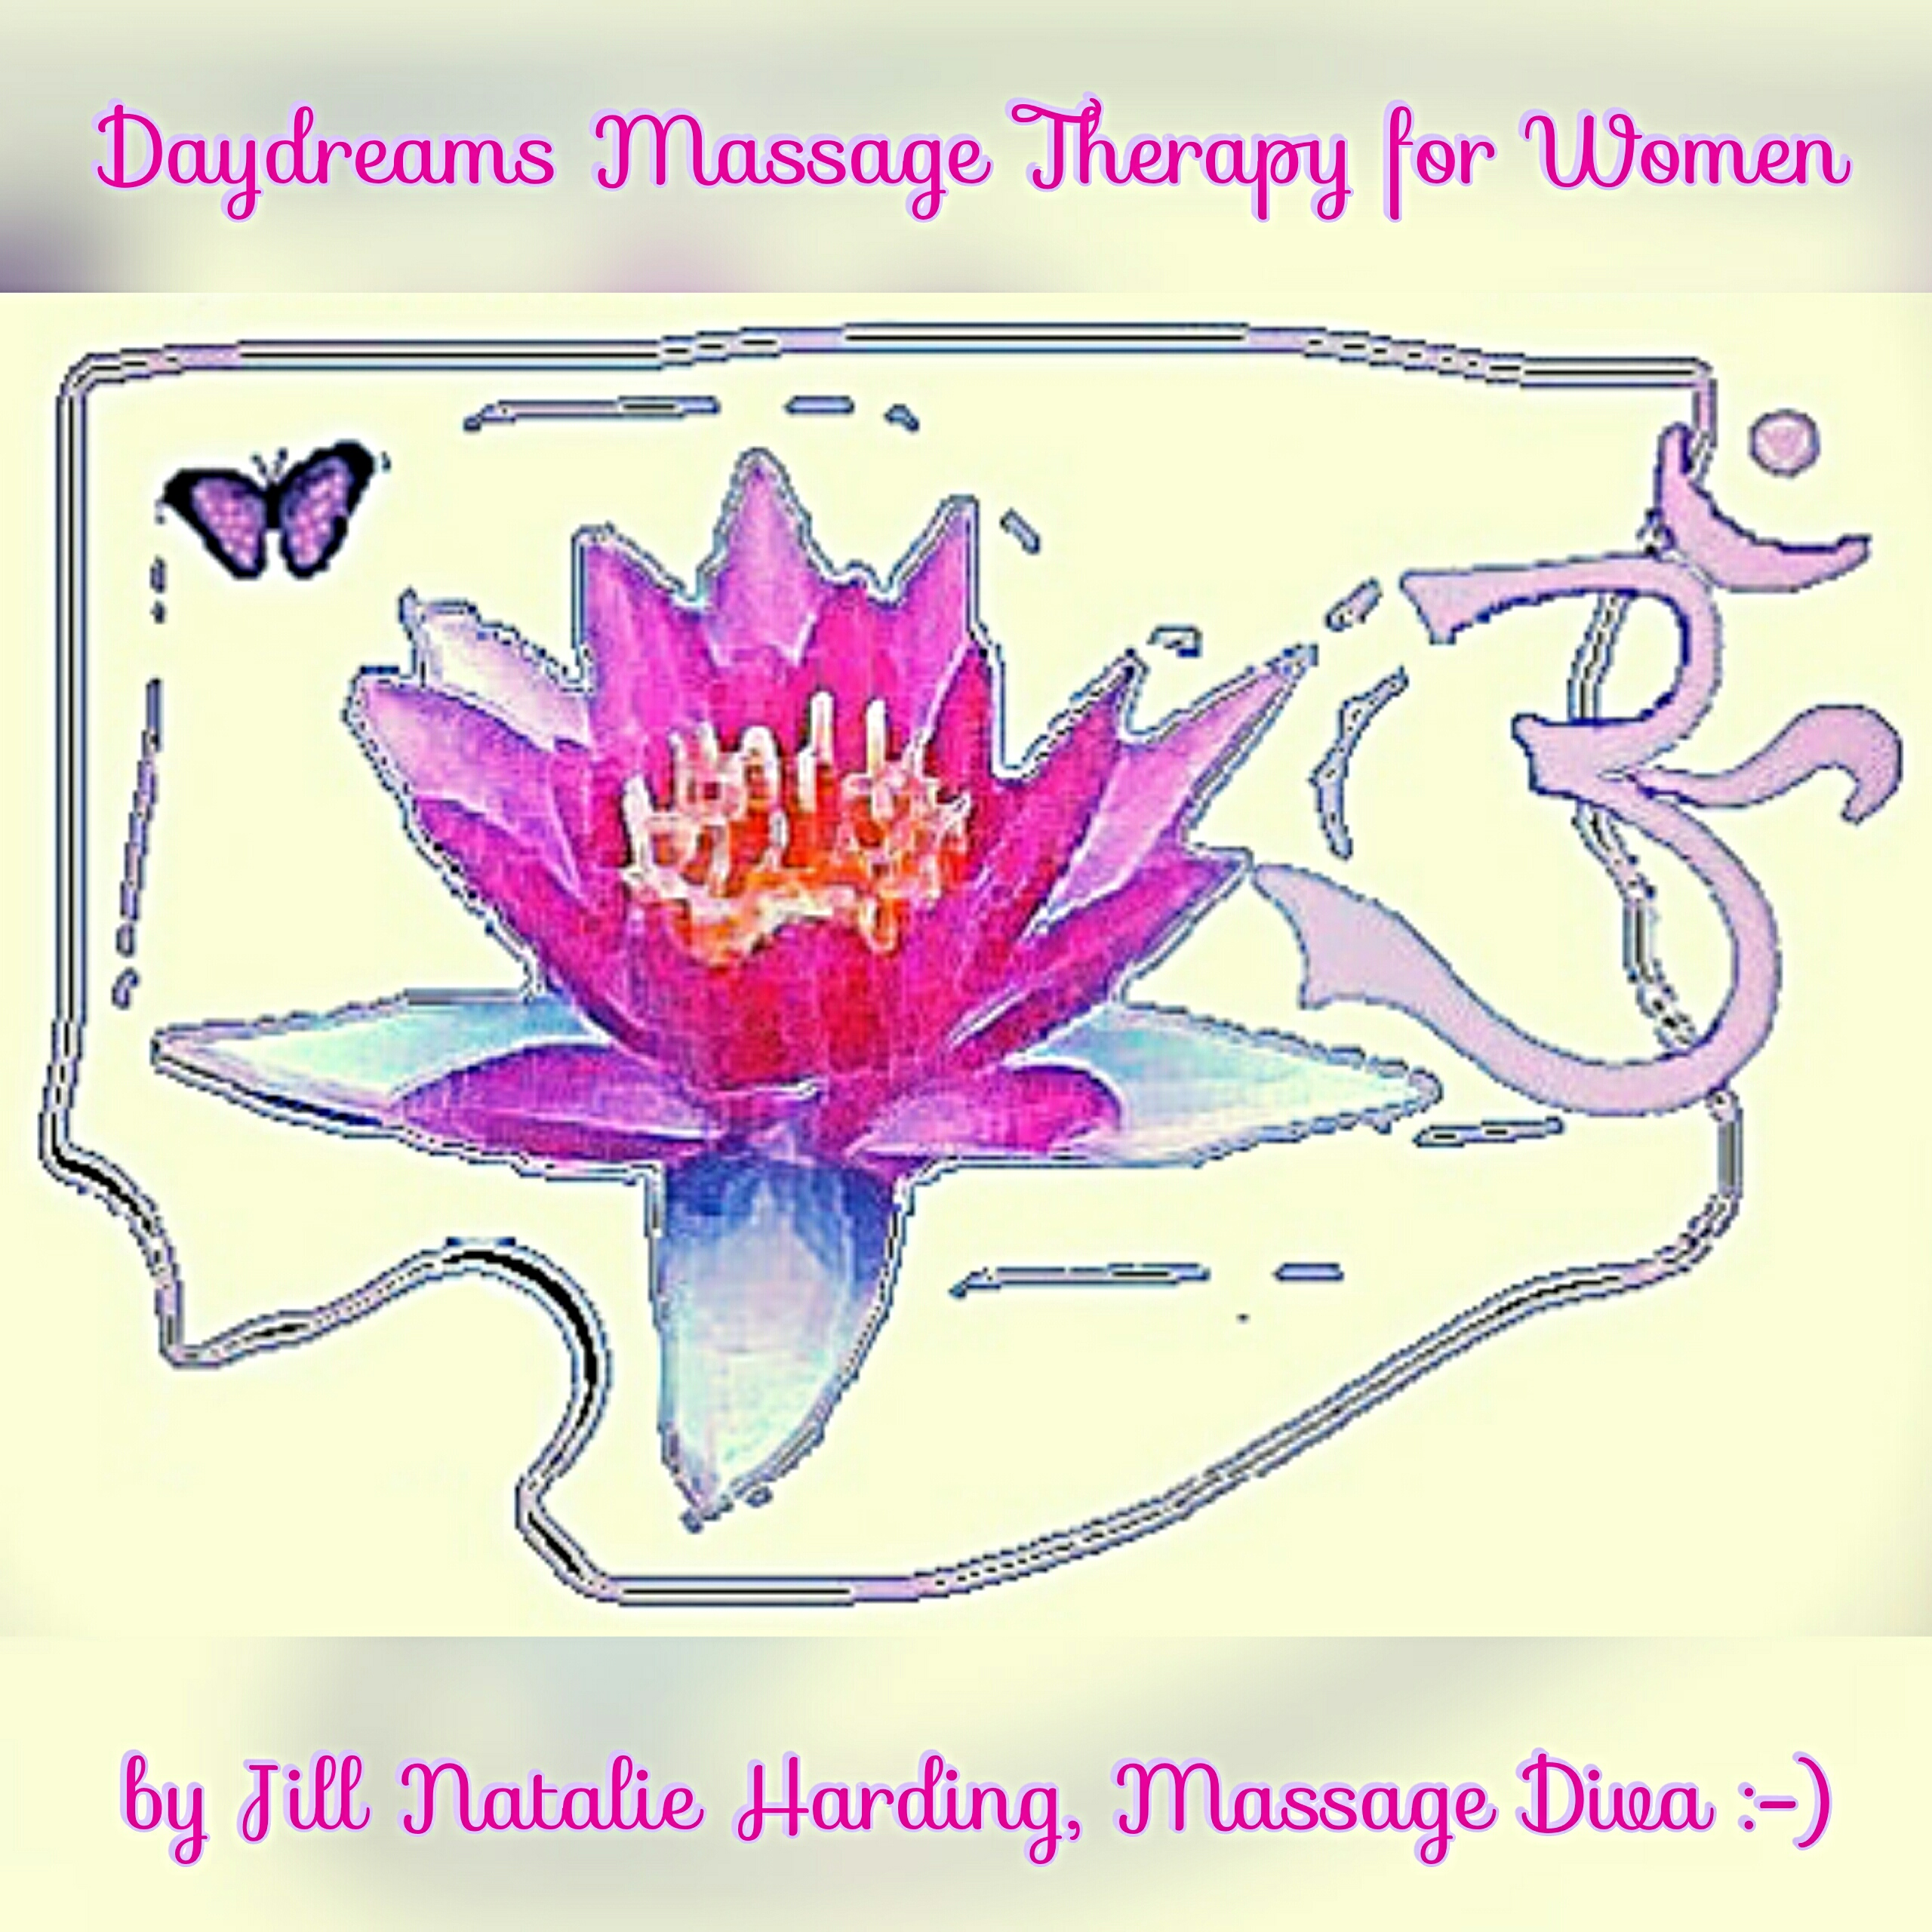 Daydreams Massage Therapy for Women